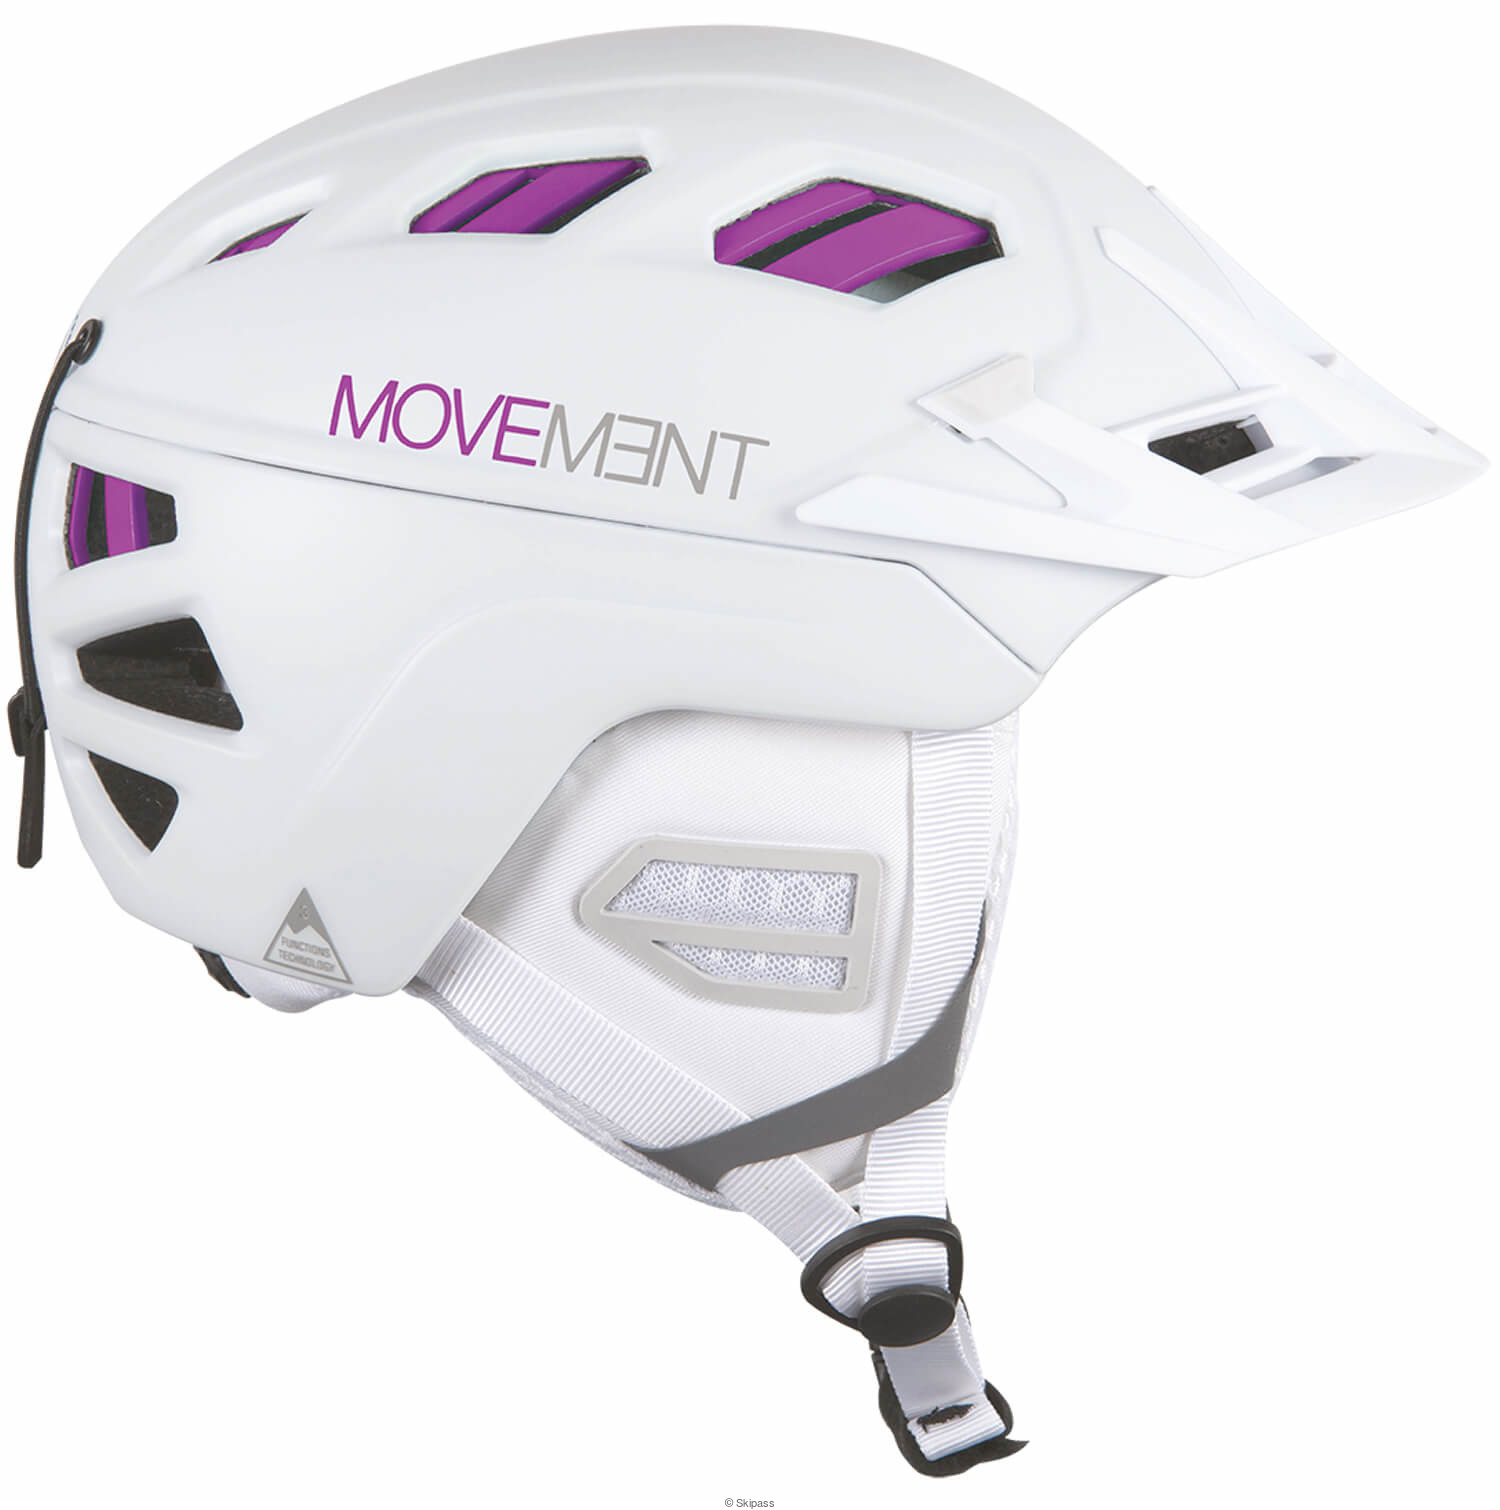 Movement casque 3Tech Freeride